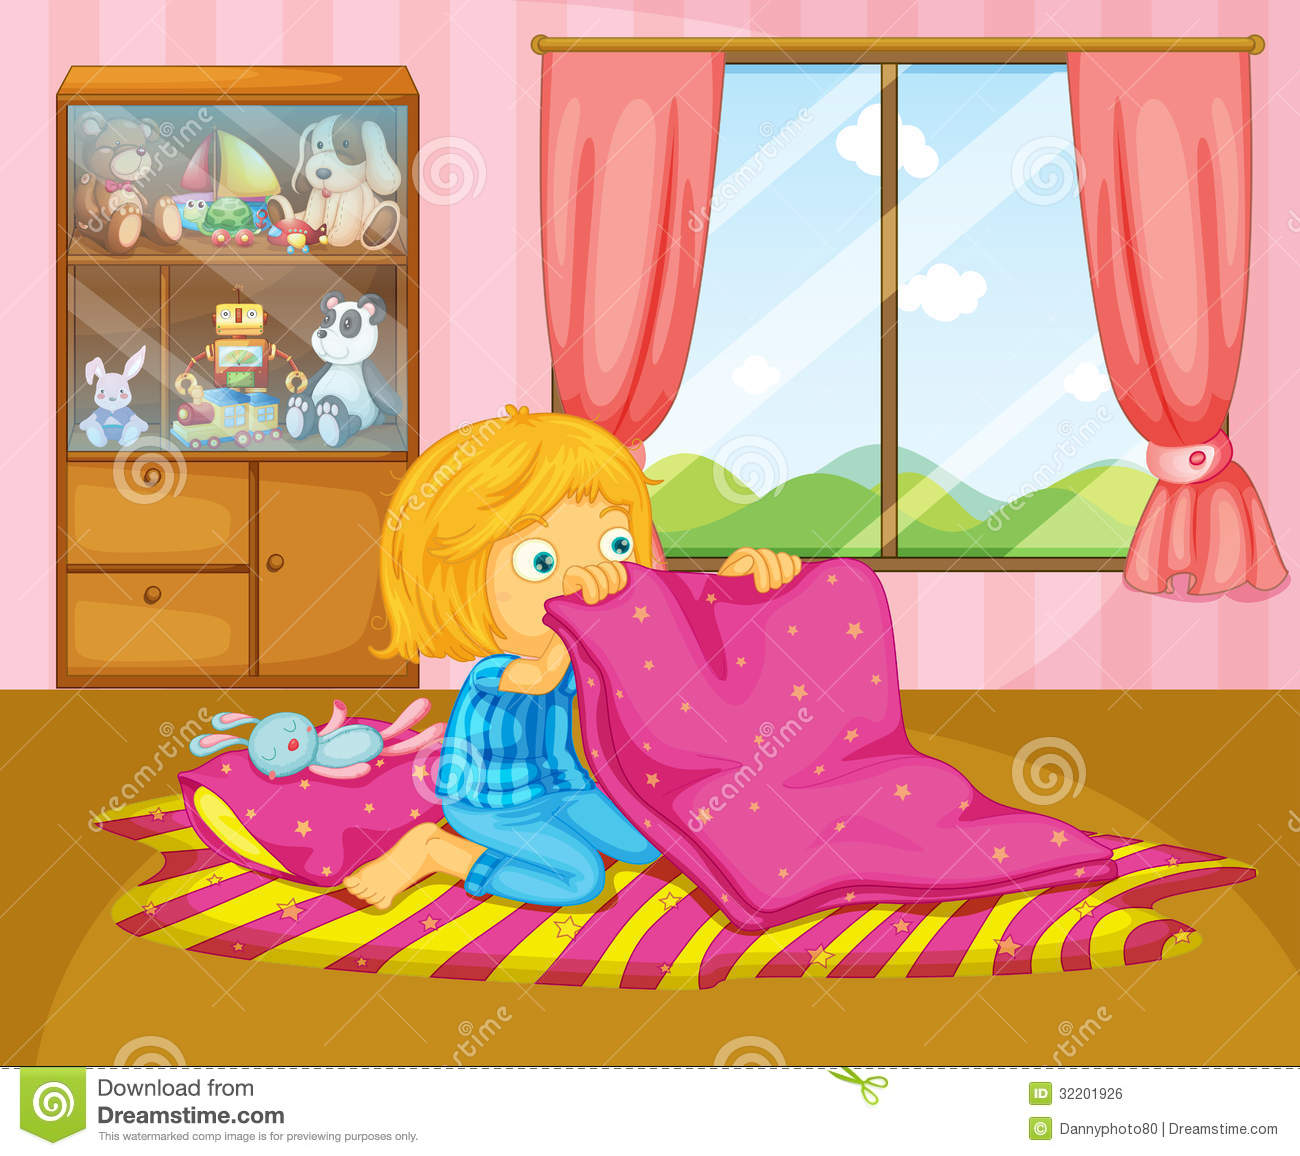 Galleries Related: Book Clipart , Bed Clipart , Pillow Clipart ,